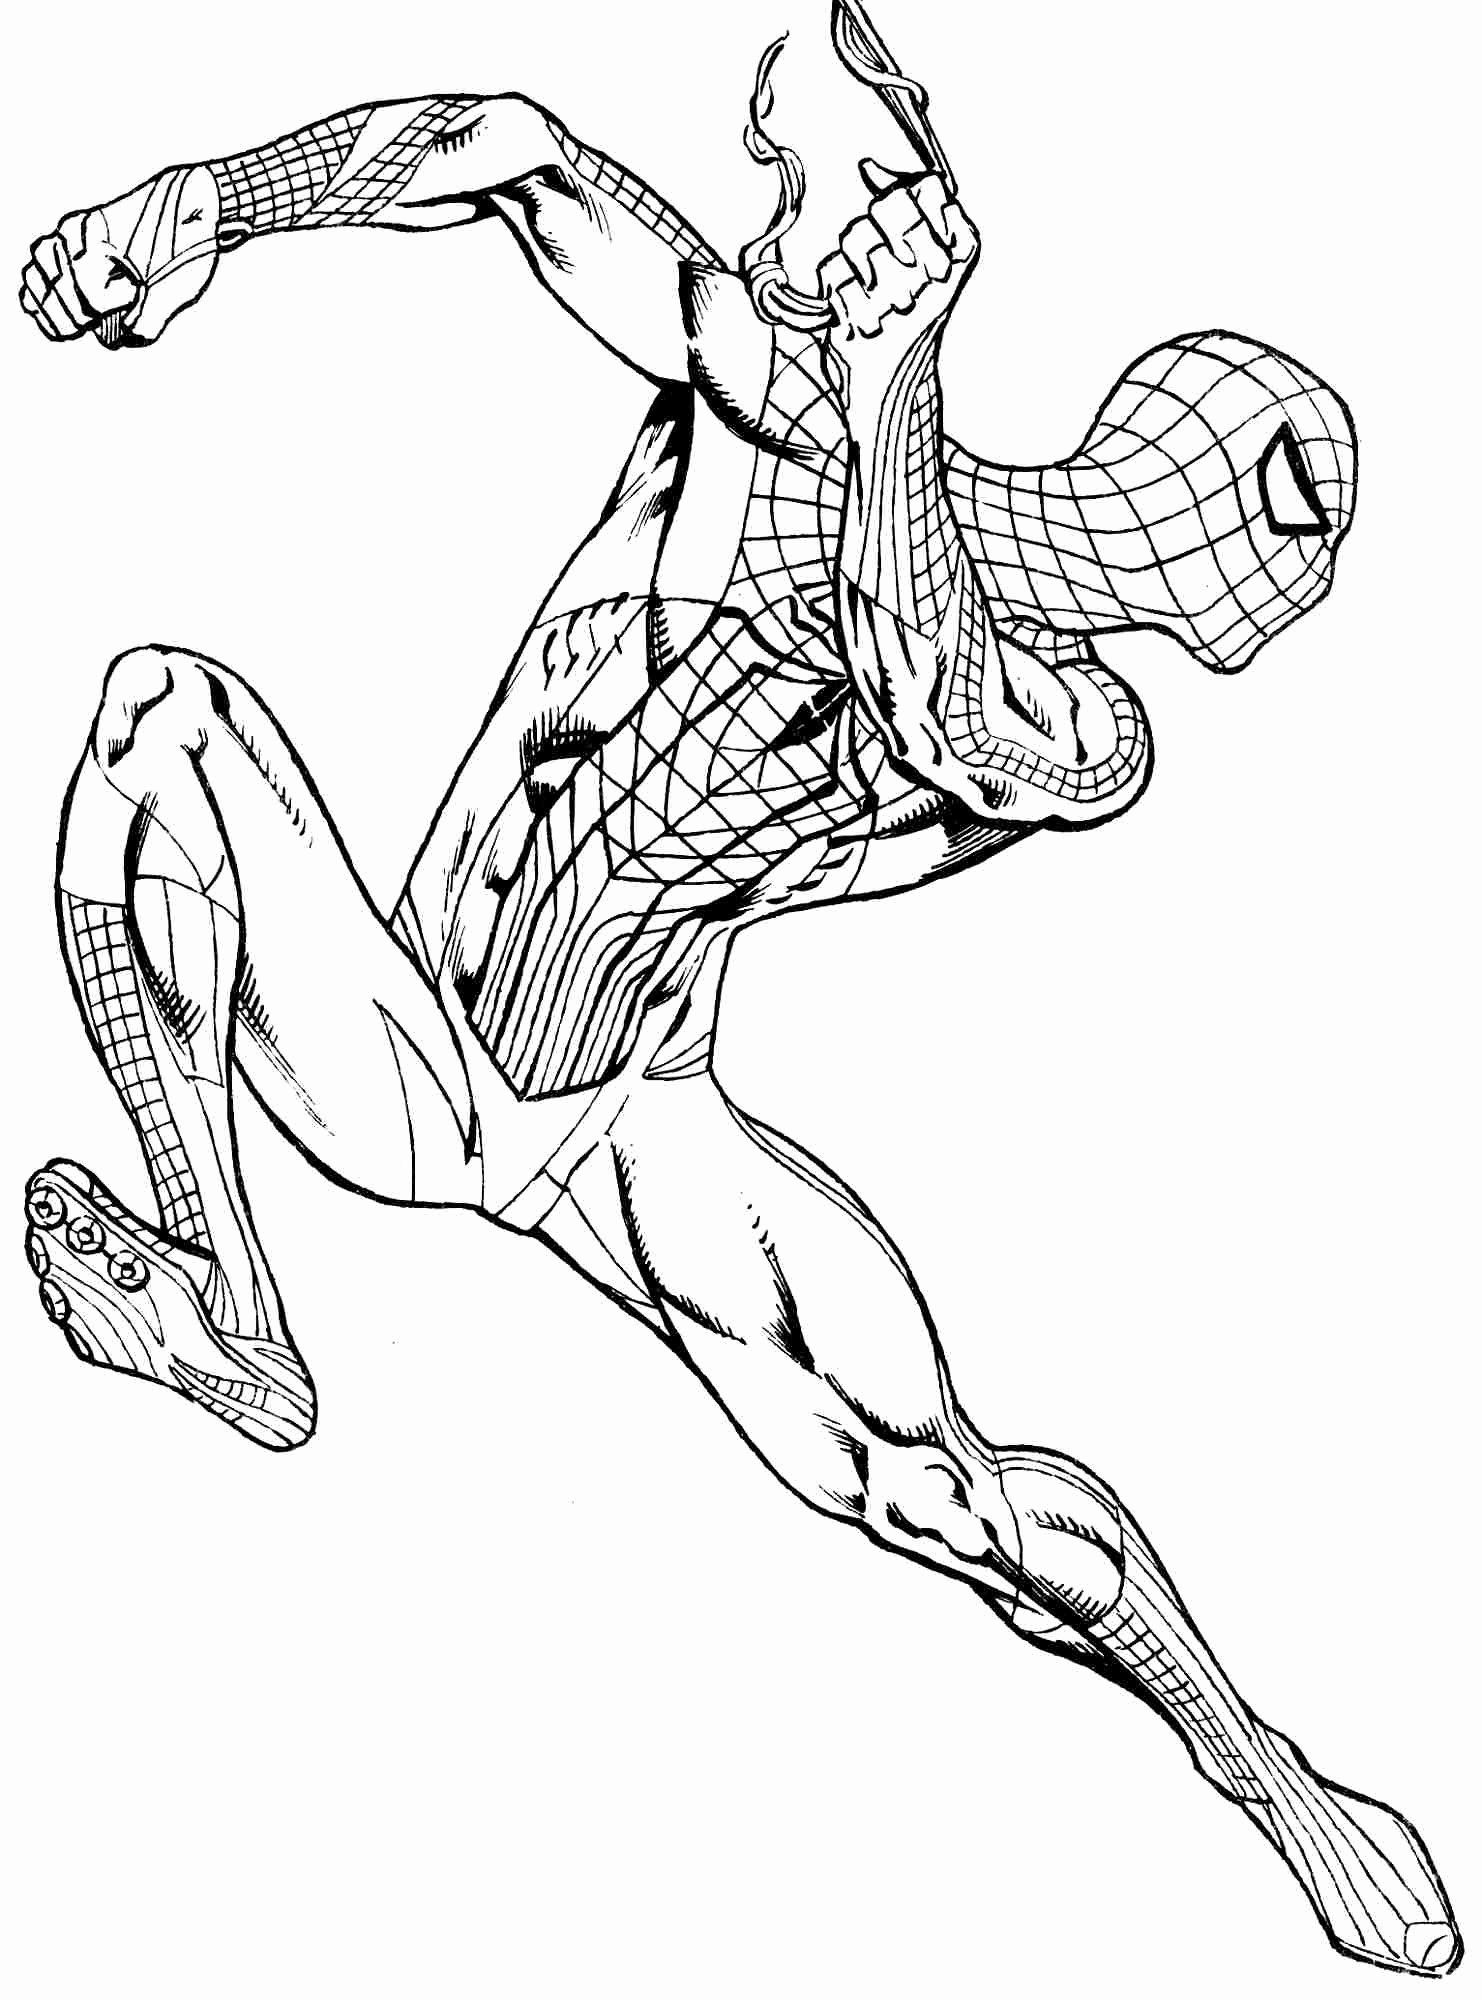 Super Hero Printable Coloring Pages Elegant Coloring Pages Coloring Book Amazing Supe Spiderman Coloring Free Printable Coloring Pages Printable Coloring Pages